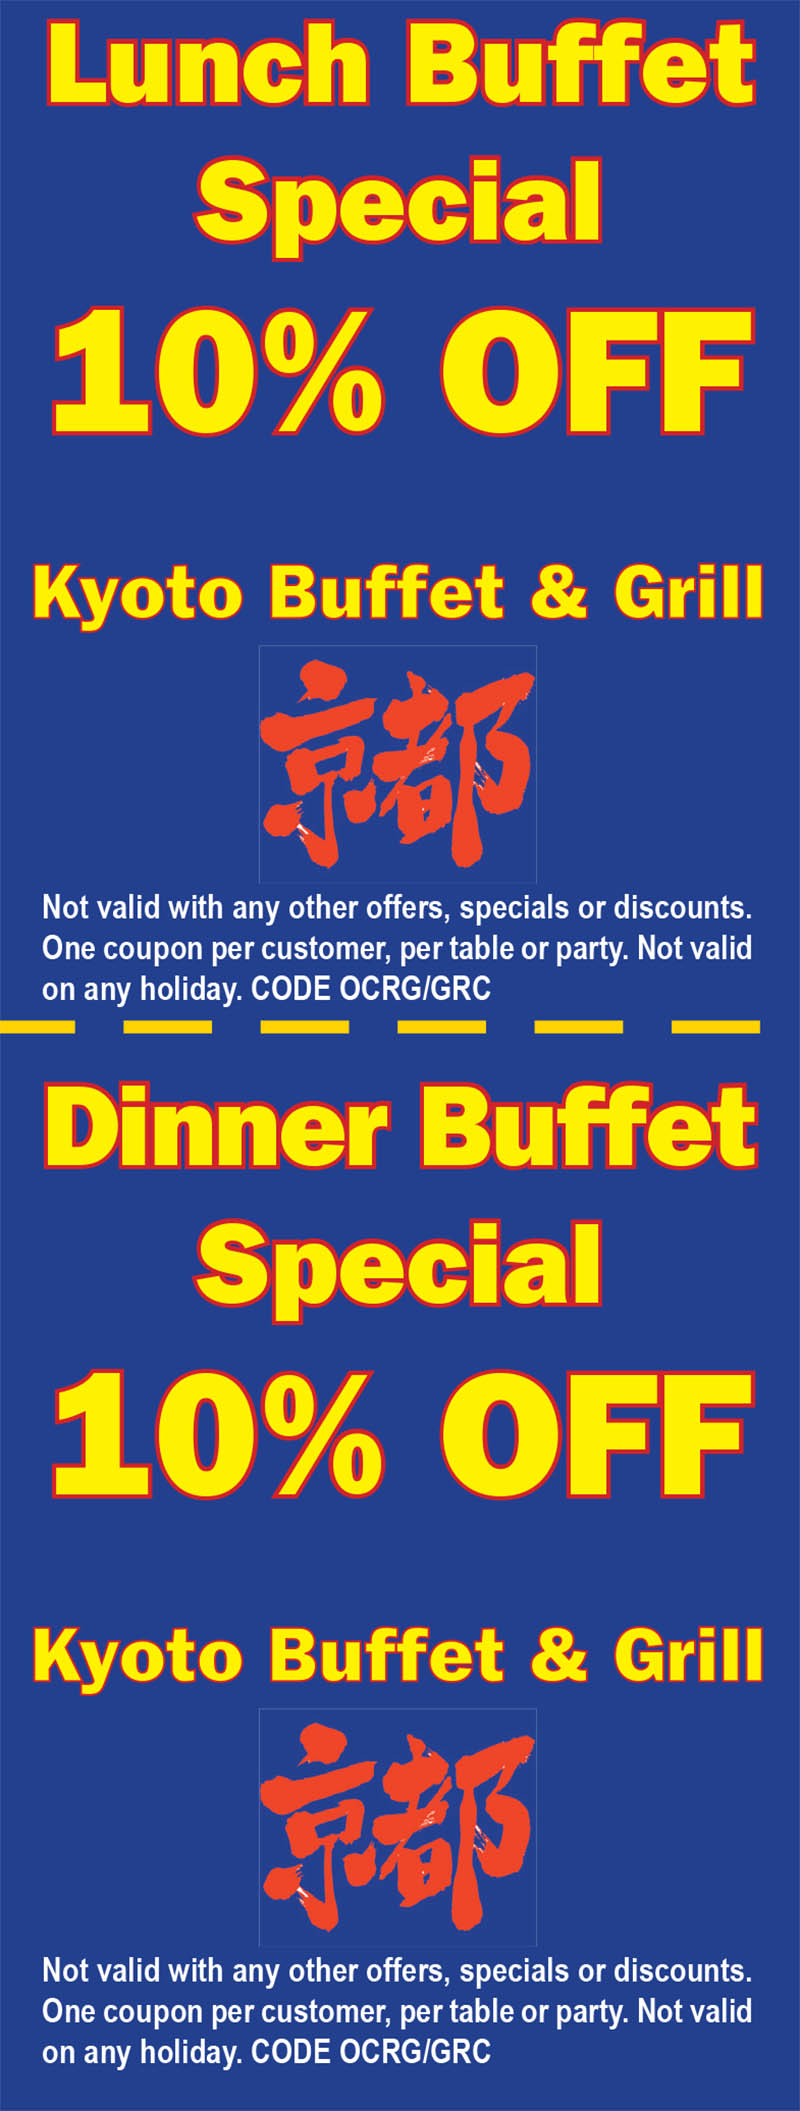 kyoto buffet grill oc restaurant guides rh ocrestaurantguides com tokyo buffet coupon southfield mi tokyo buffet coupons freehold nj